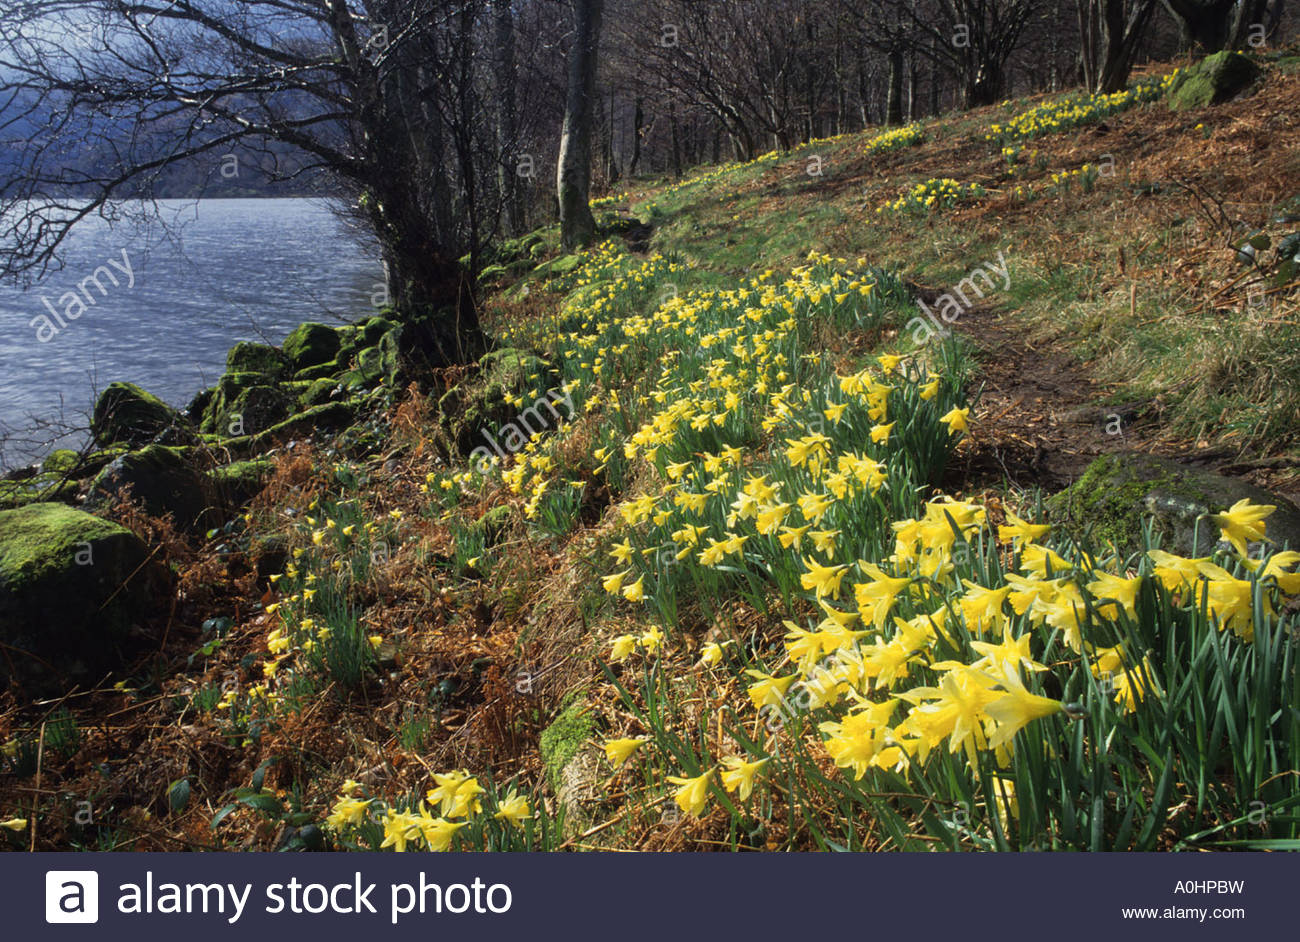 ullswater lake district cumbria wordsworth s daffodils narcissus stock photo ullswater lake district cumbria wordsworth s daffodils narcissus pseudonarcissus